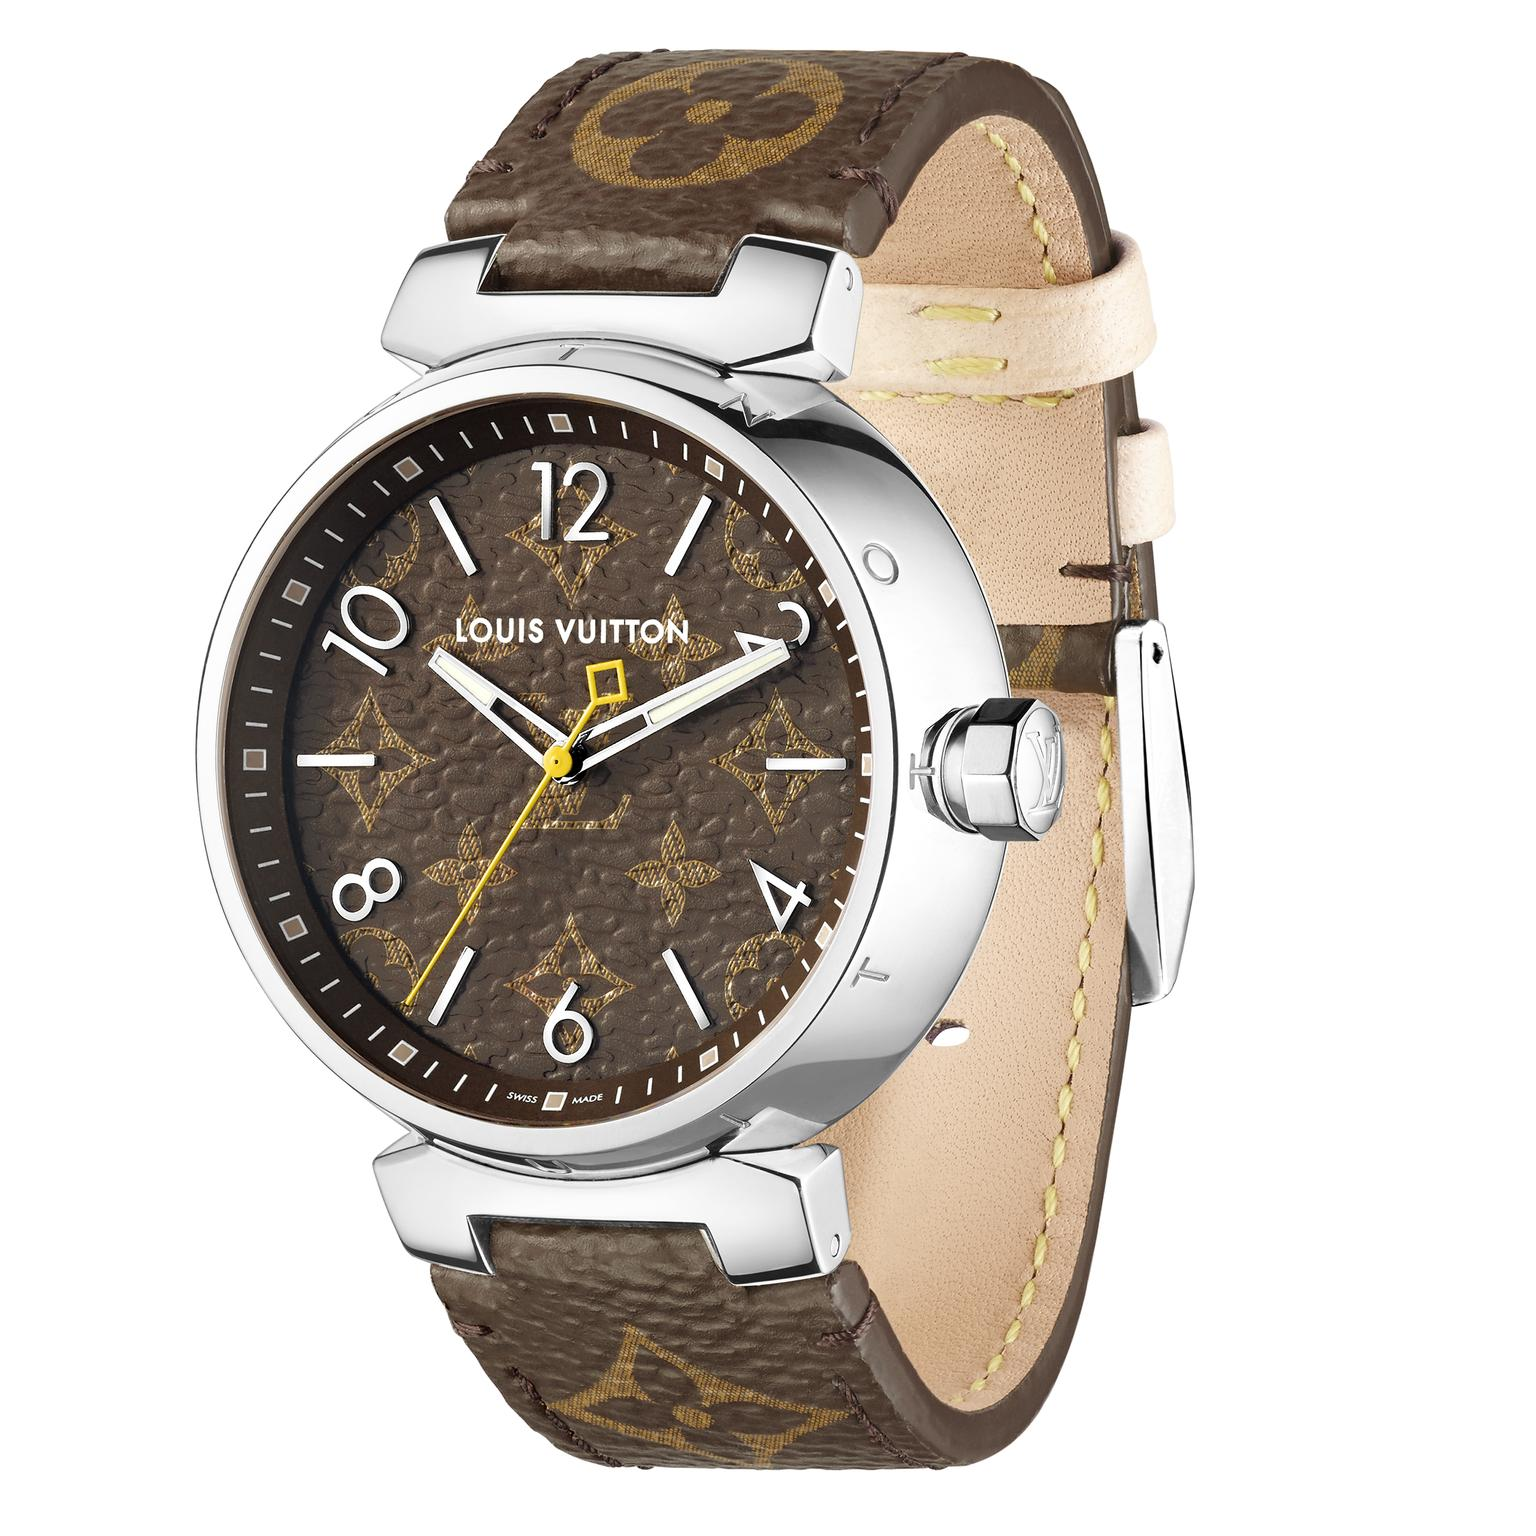 Louis Vuitton Icon Tambour Monogram watch side view 39.5 mm